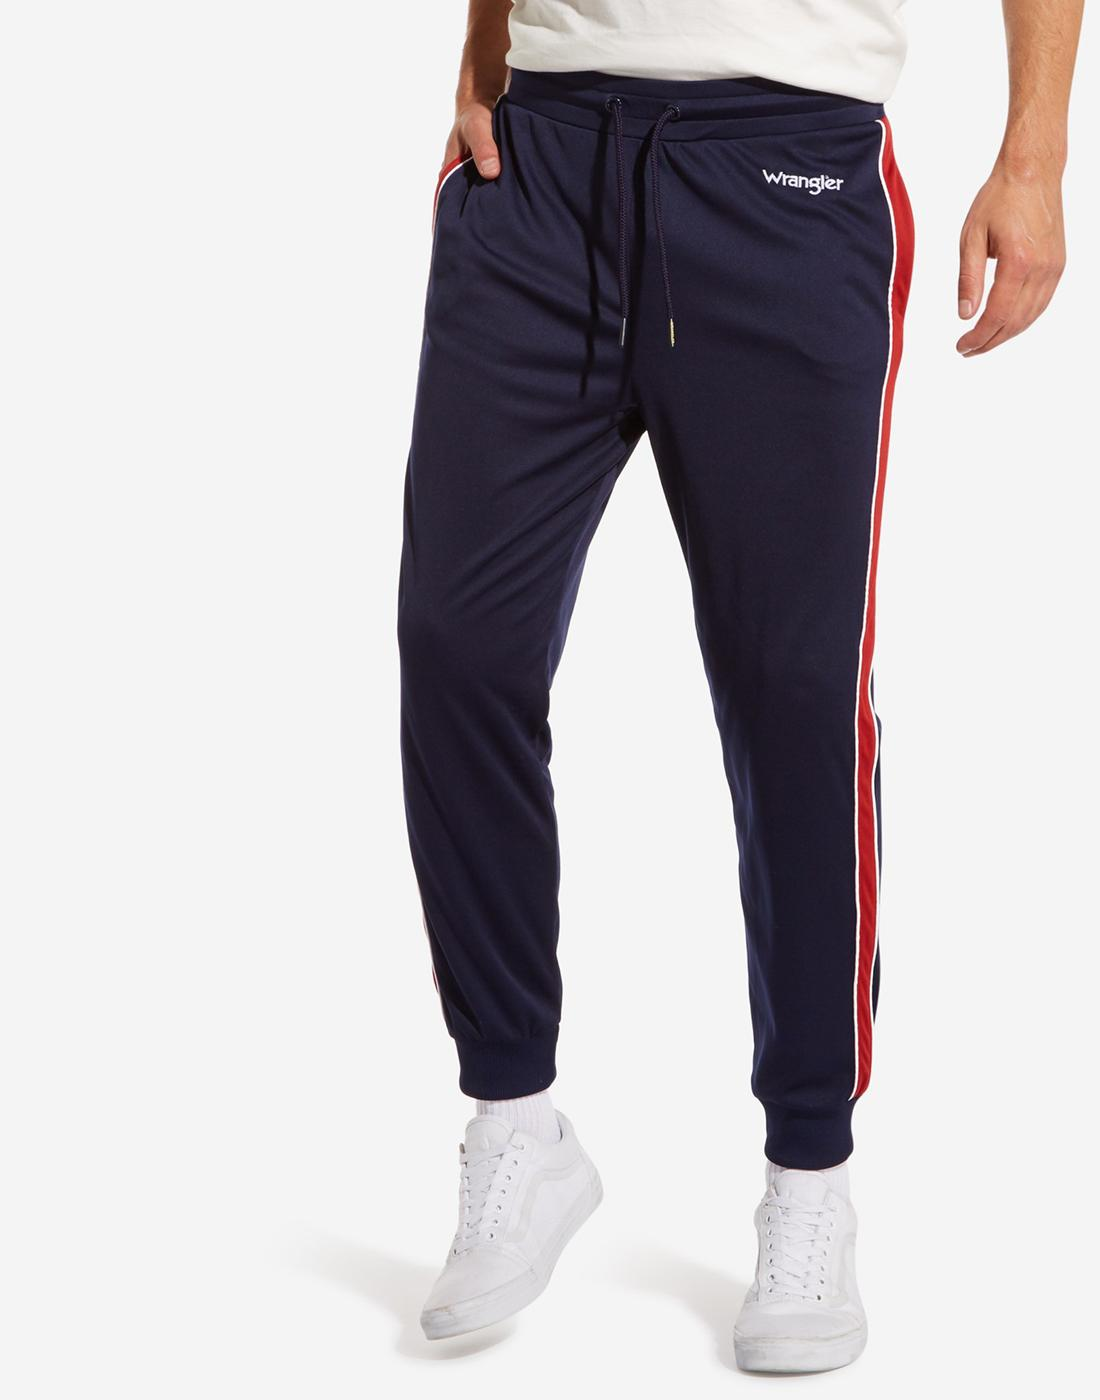 WRANGLER Men's Retro 70s Tracksuit Bottoms